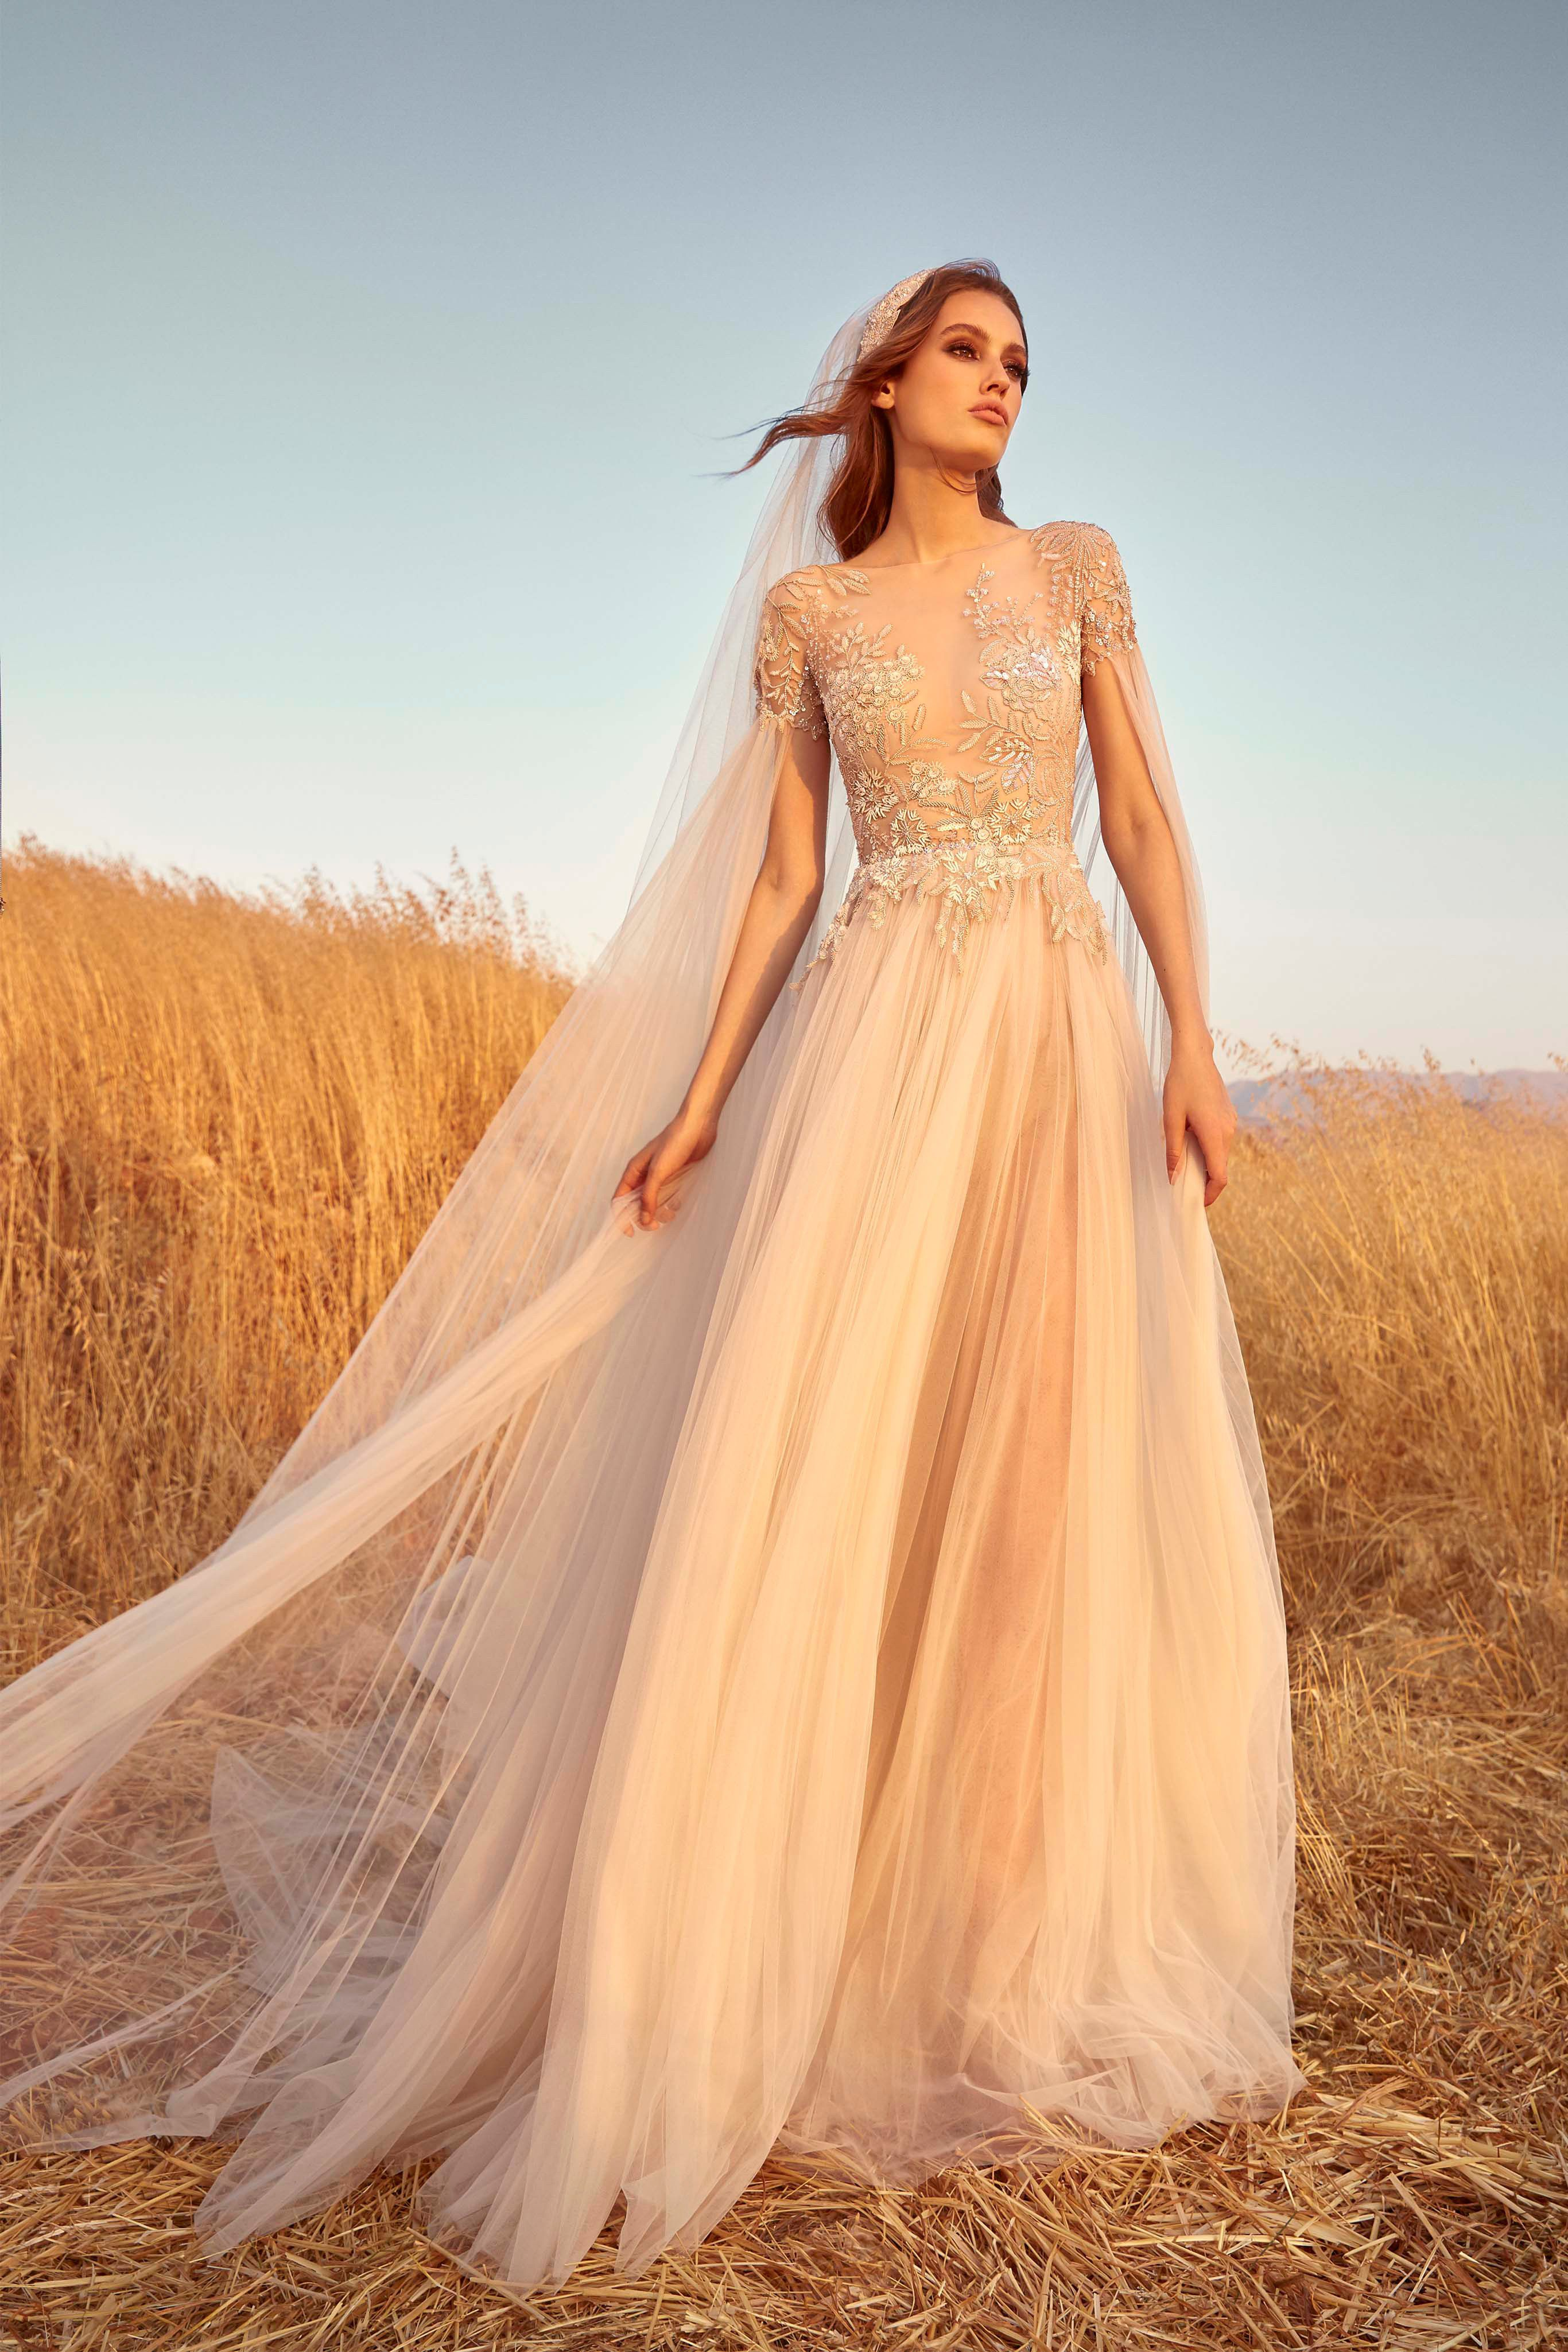 Zuhair Murad Bridal Fall 2020 Fashion Show Collection See The Complete Zuhair Mur Wedding Dresses Zuhair Murad Zuhair Murad Bridal Haute Couture Wedding Dress